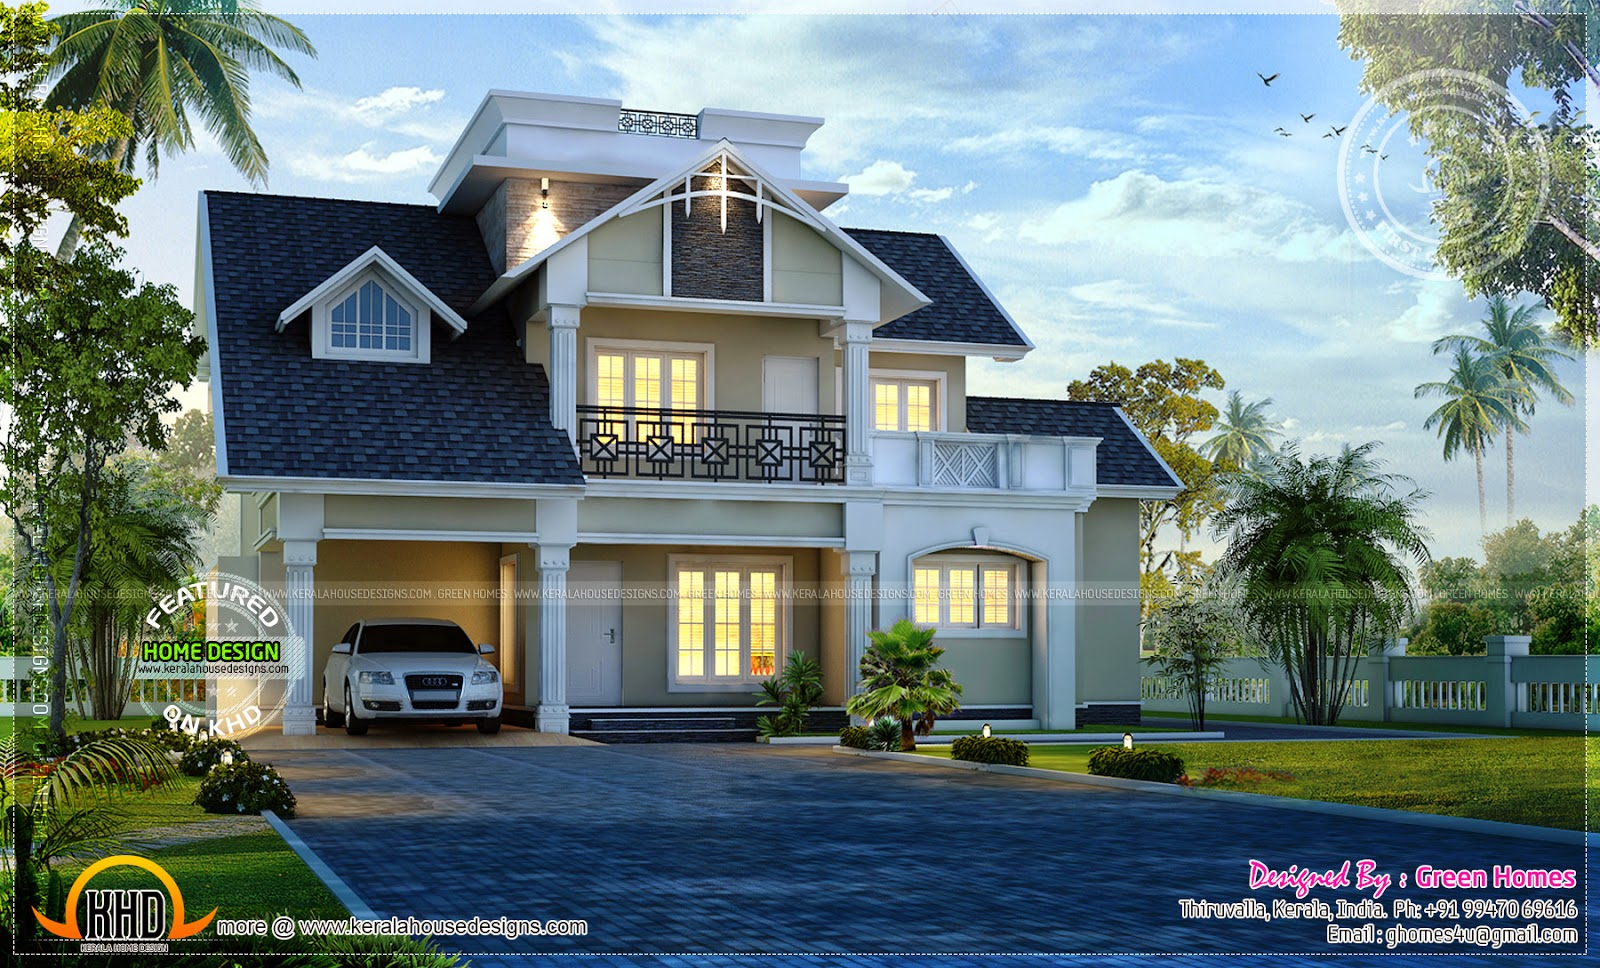 Awesome modern house exterior kerala home design and for Awesome playhouse plans